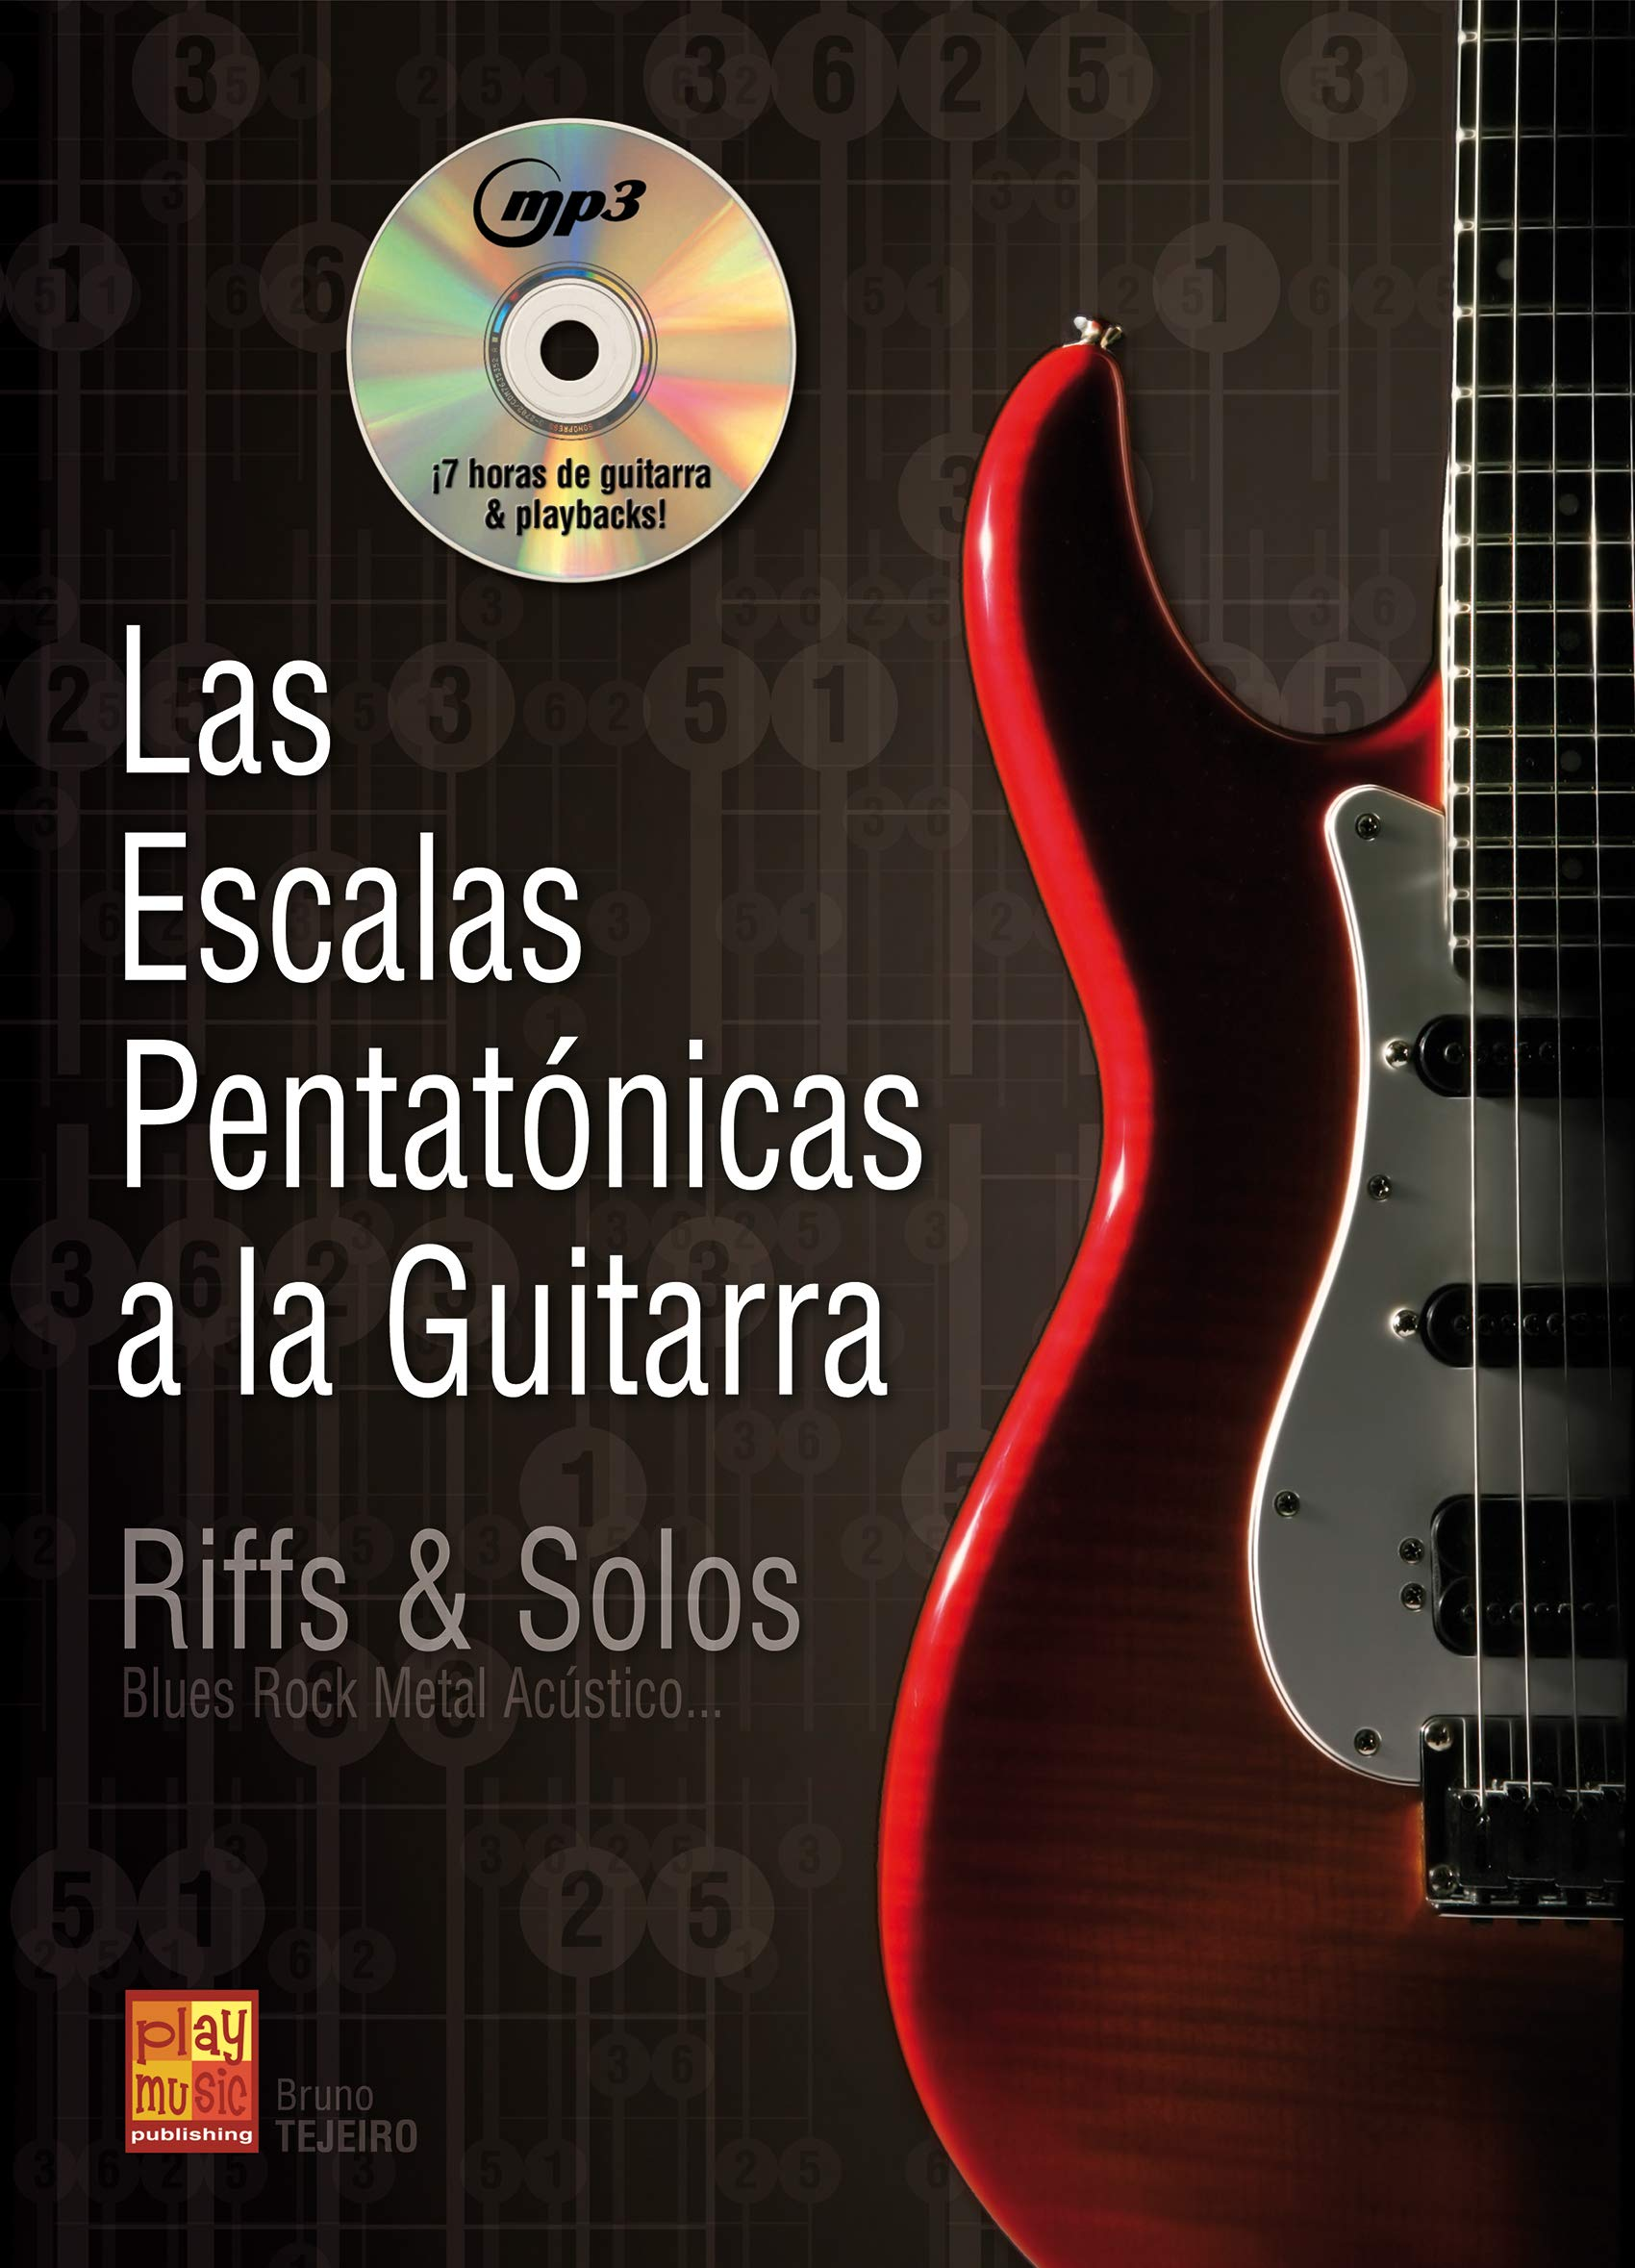 Las escalas pentatónicas a la guitarra - 1 Libro + 1 CD: Amazon.es ...